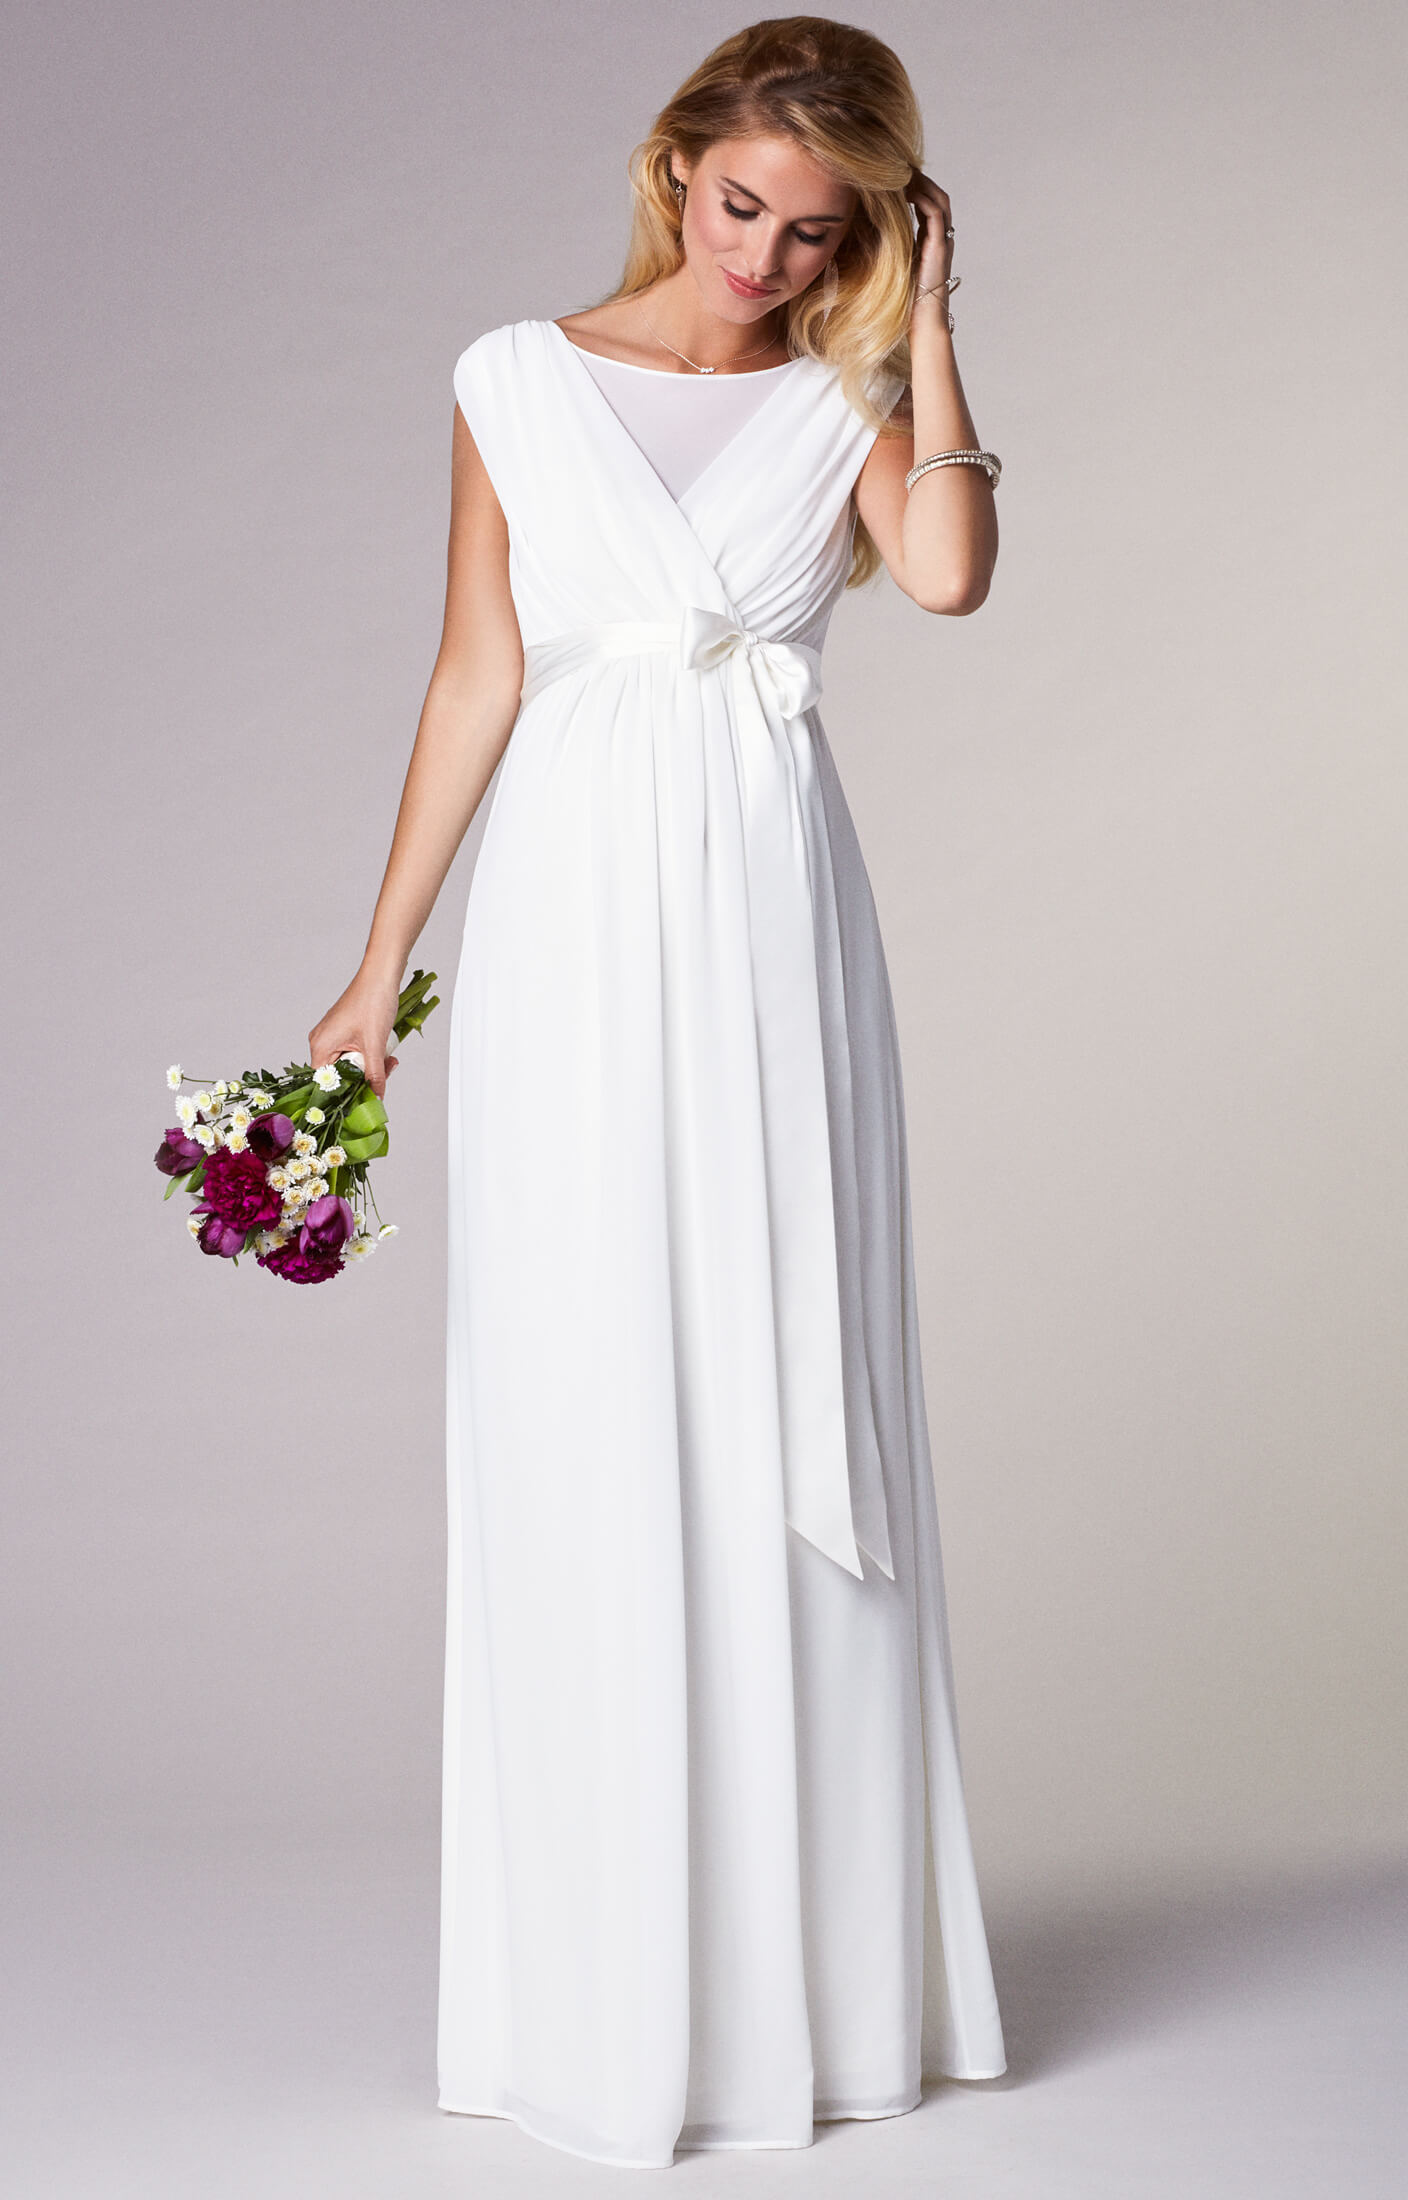 Georgette maternity wedding gown long ivory maternity for Ivory maternity wedding dresses